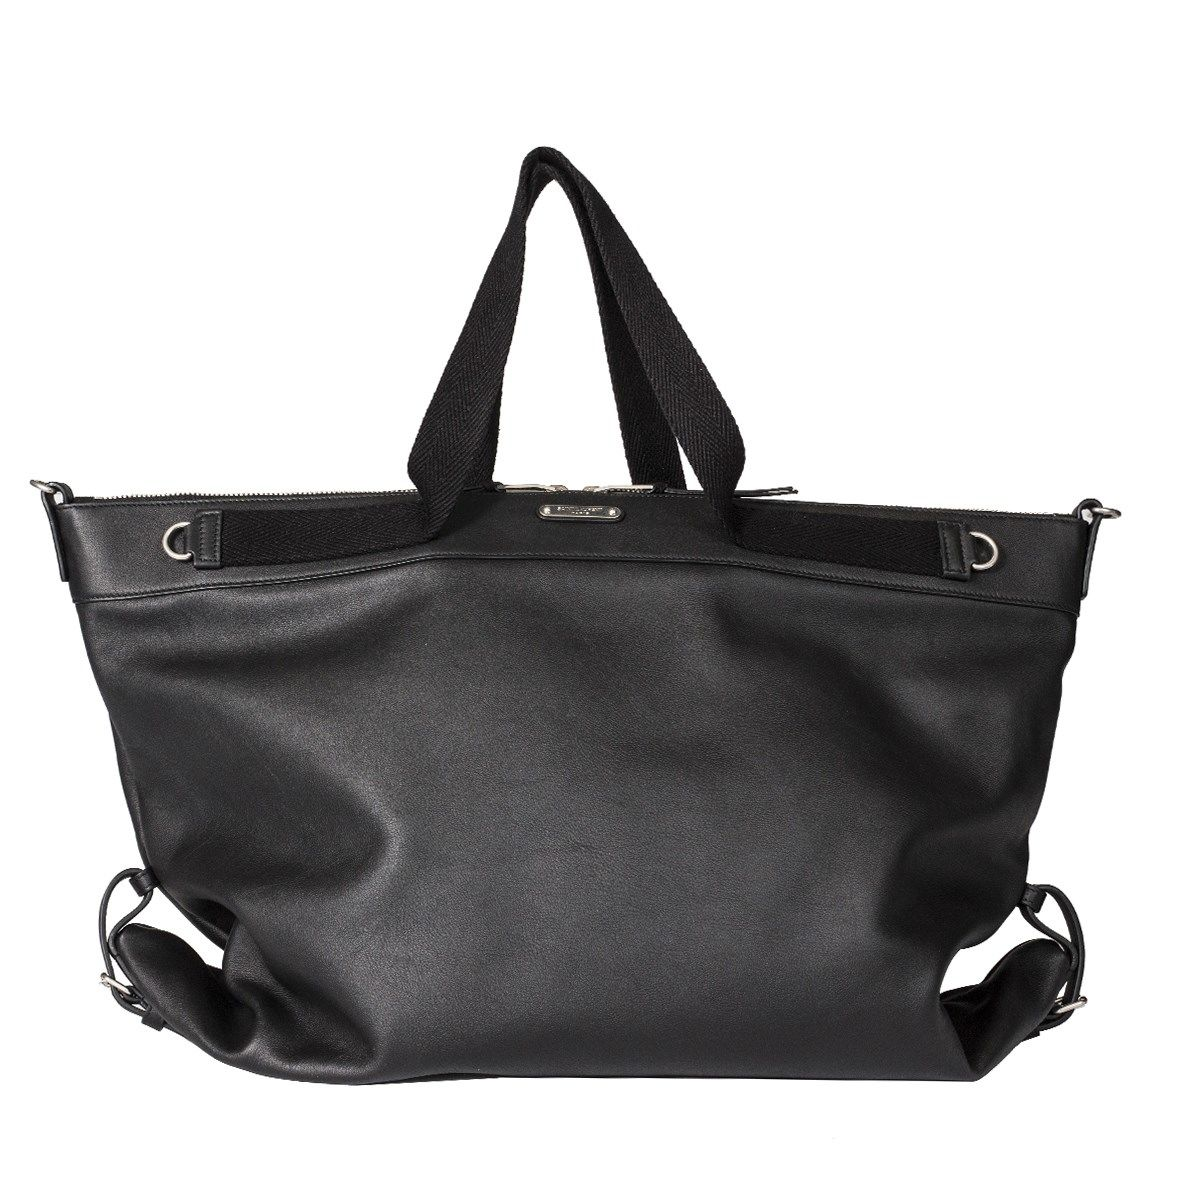 Free shipping on women's bags and purses at onelainsex.ml Shop tote bags, shoulder, clutch, crossbody, leather handbags and more. Totally free shipping and returns.